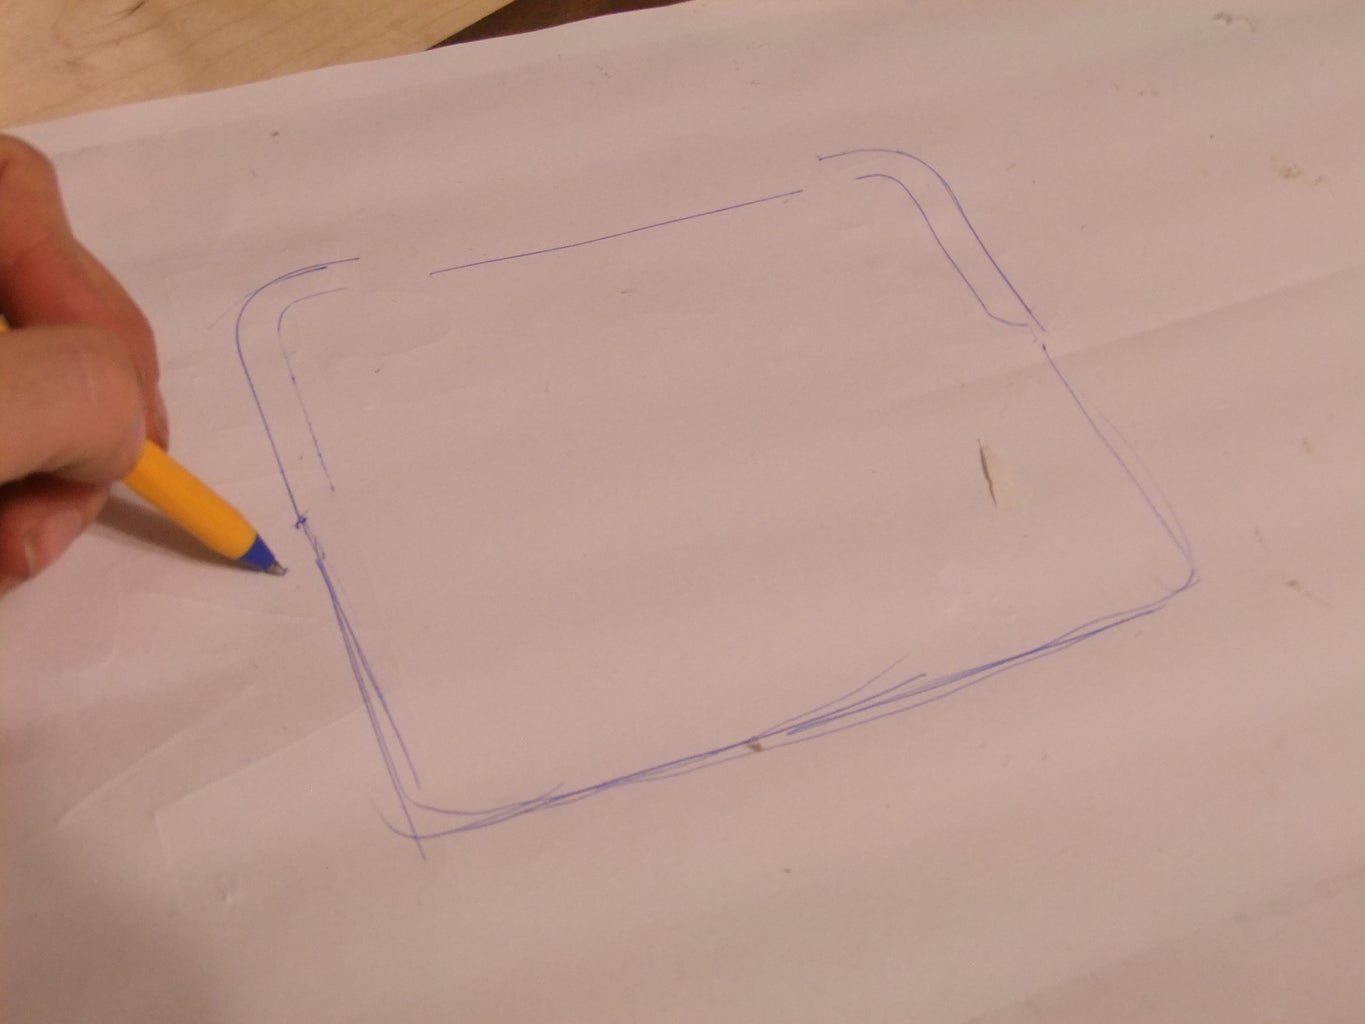 Draw the Rest of the Purse